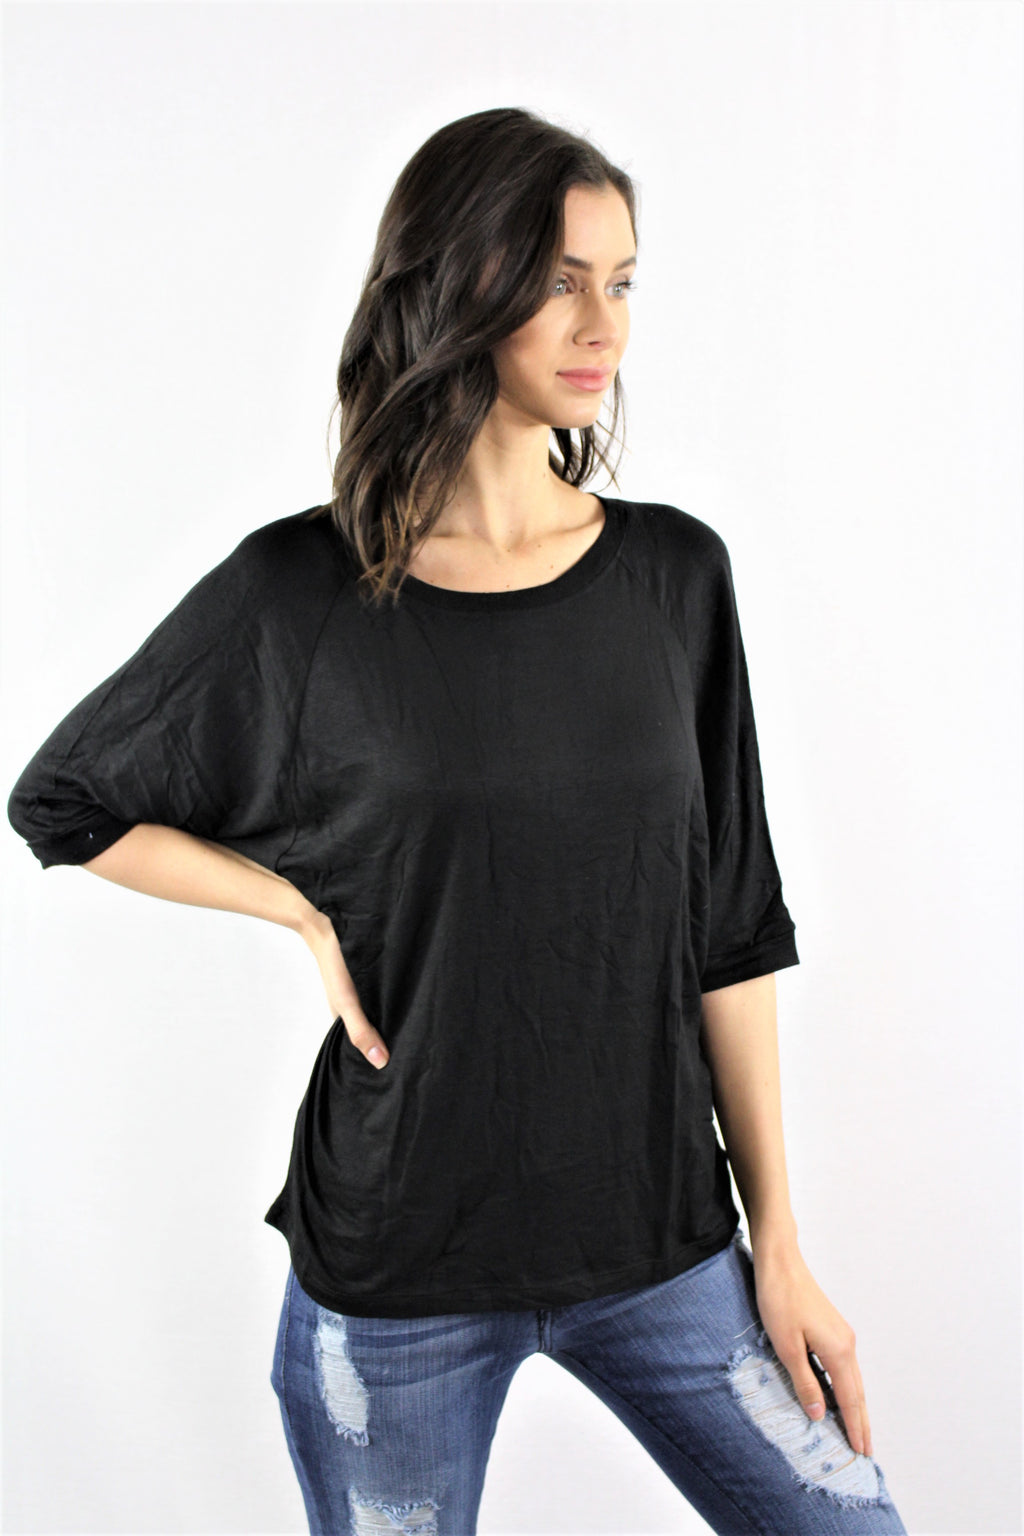 Women's Batwing Sleeve Solid Color Top